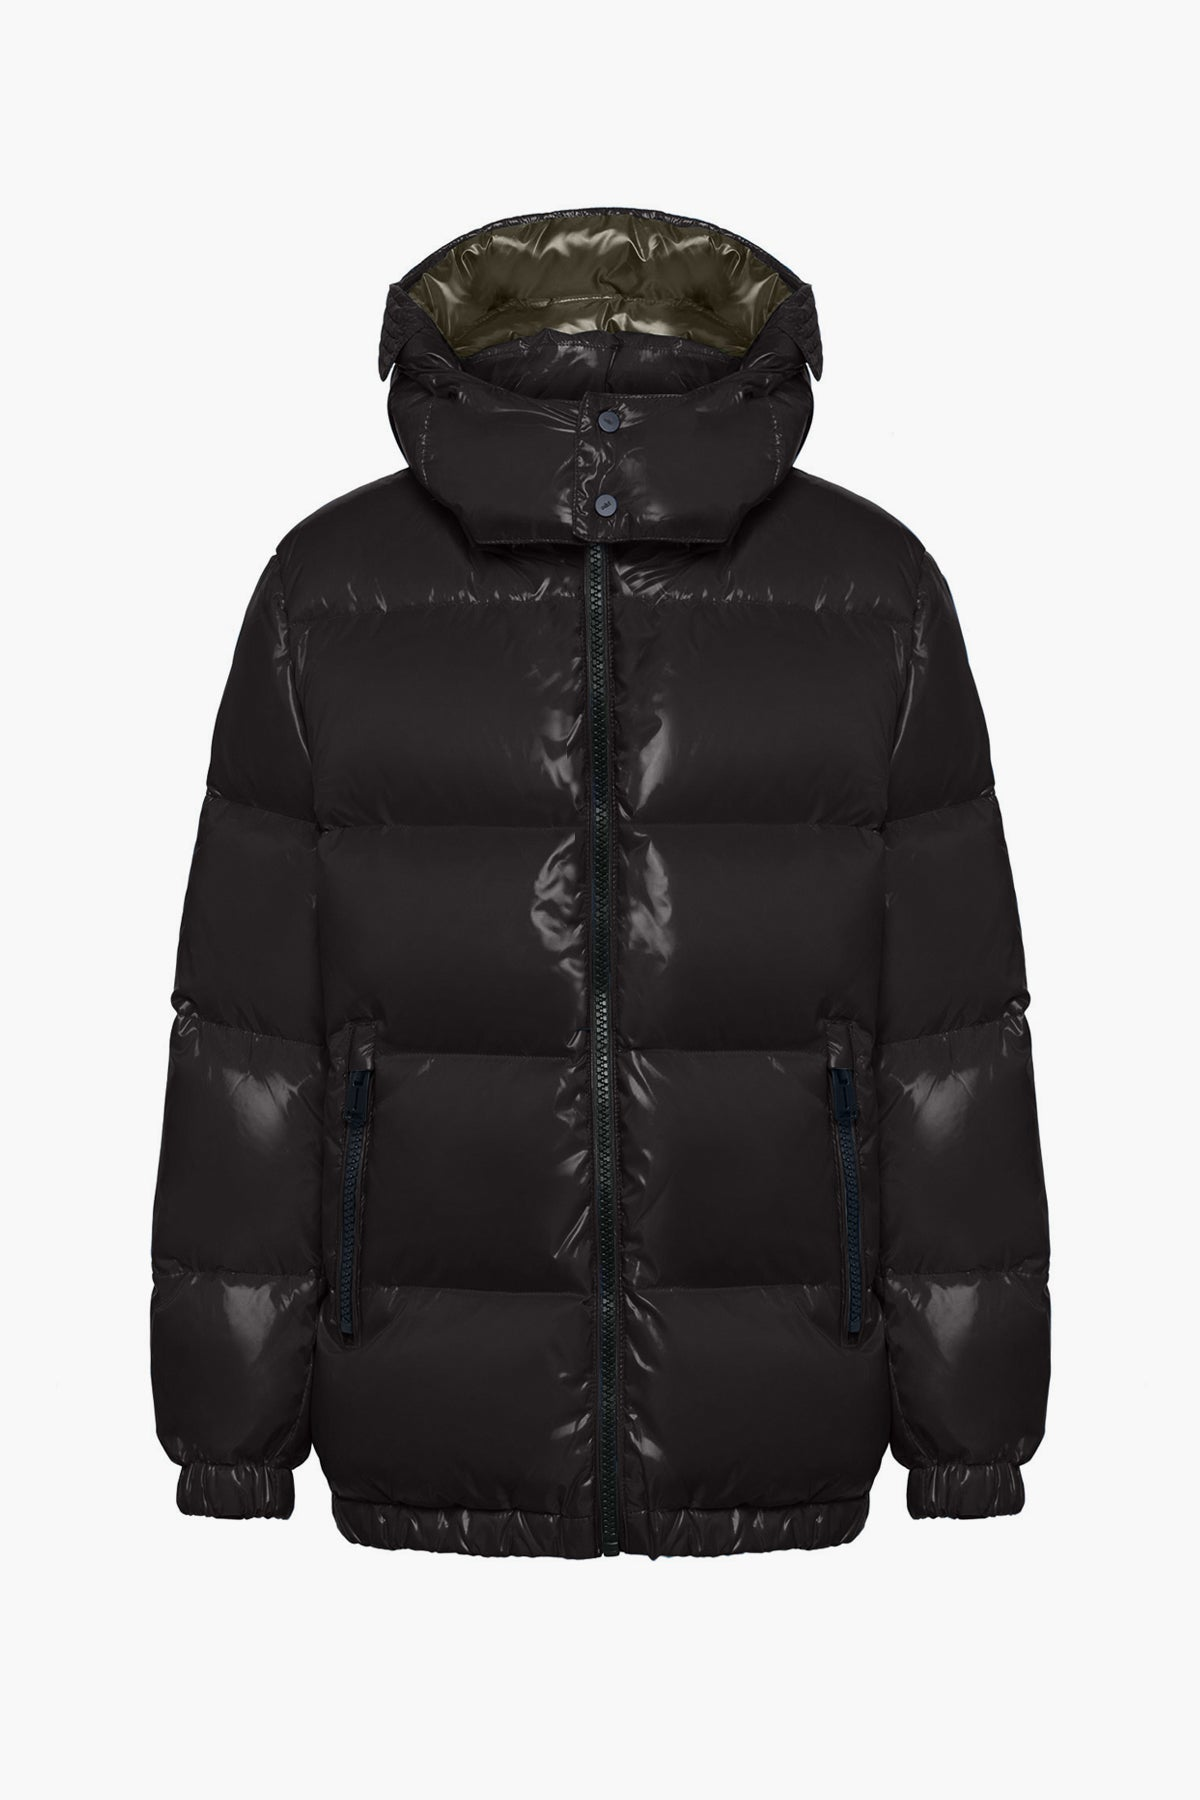 ADD Down Boys Down Jacket - Luxe Black